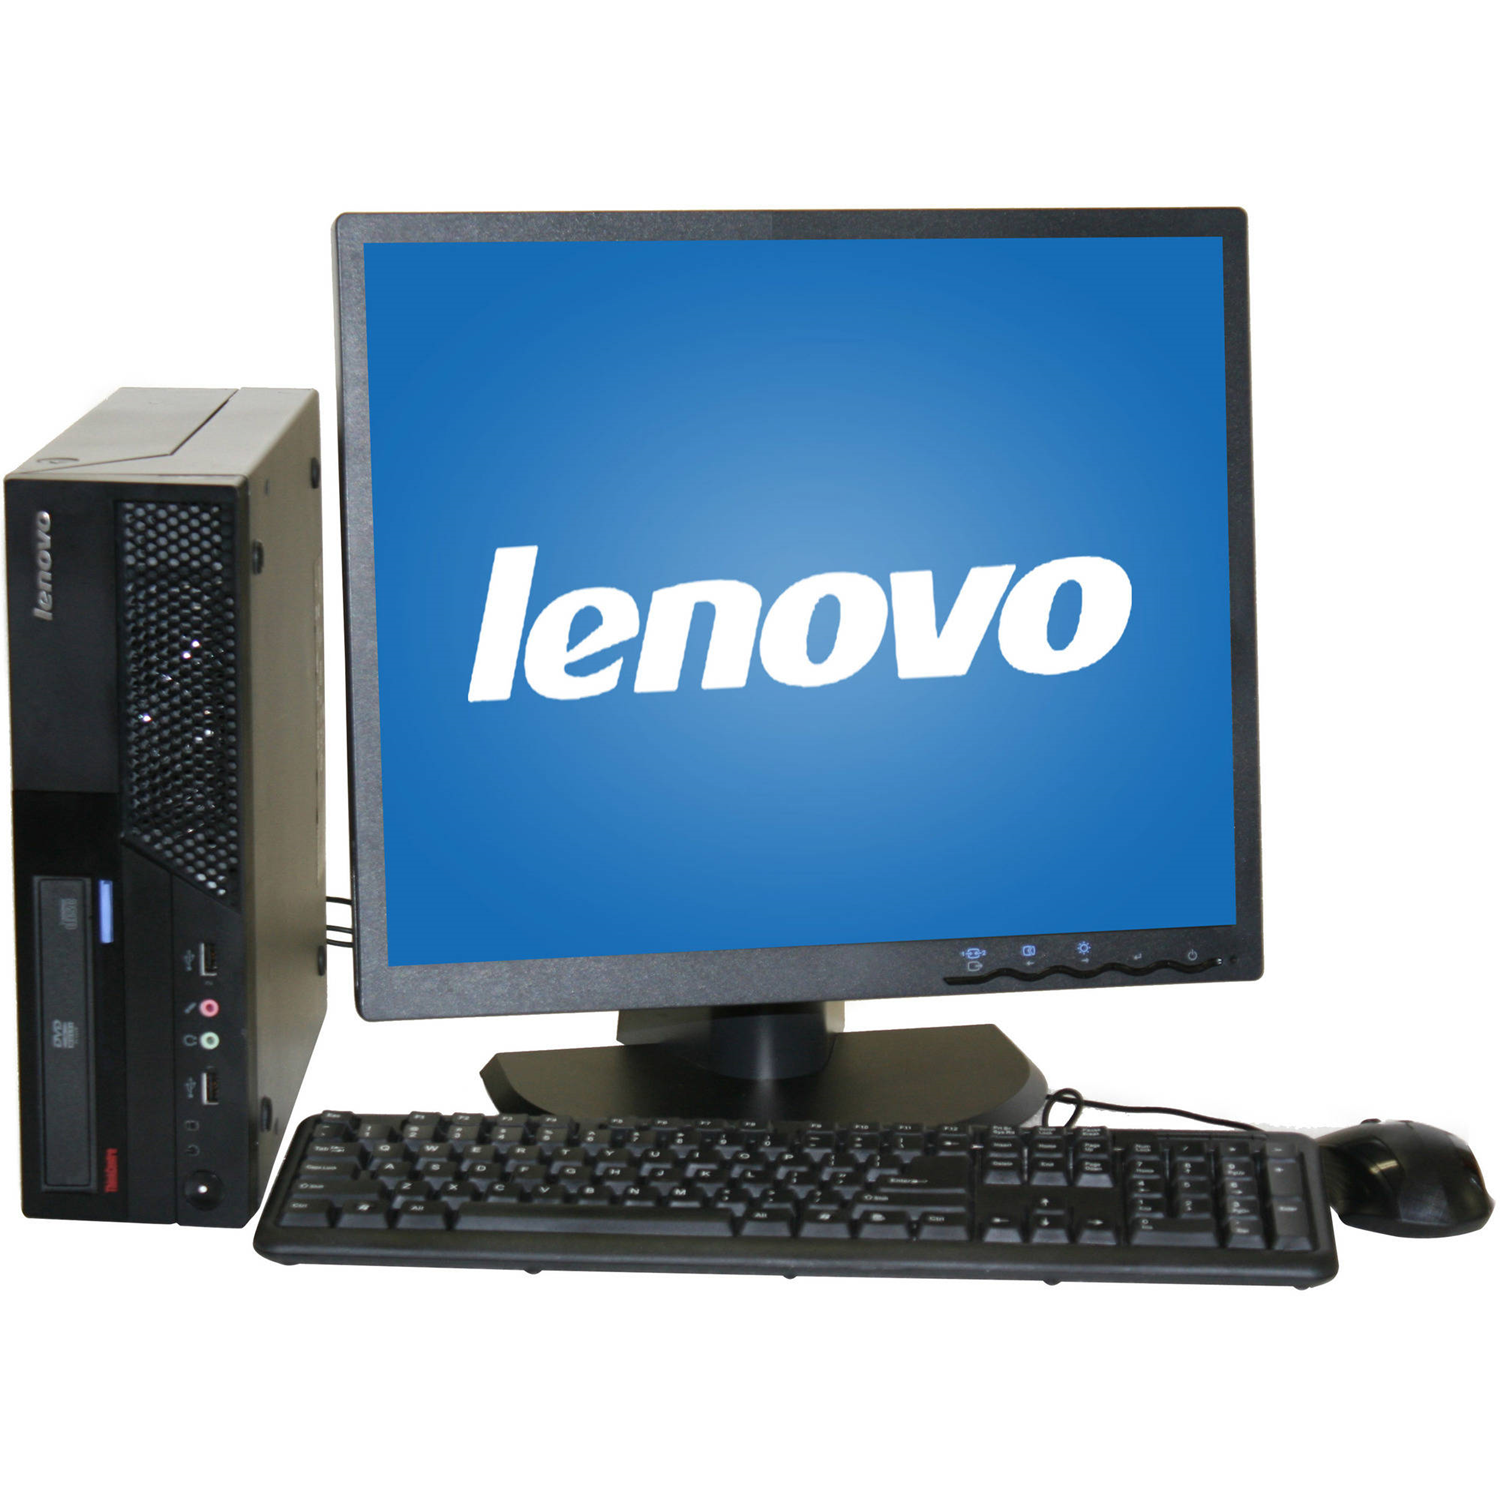 Lenovo M58 Complete French PC